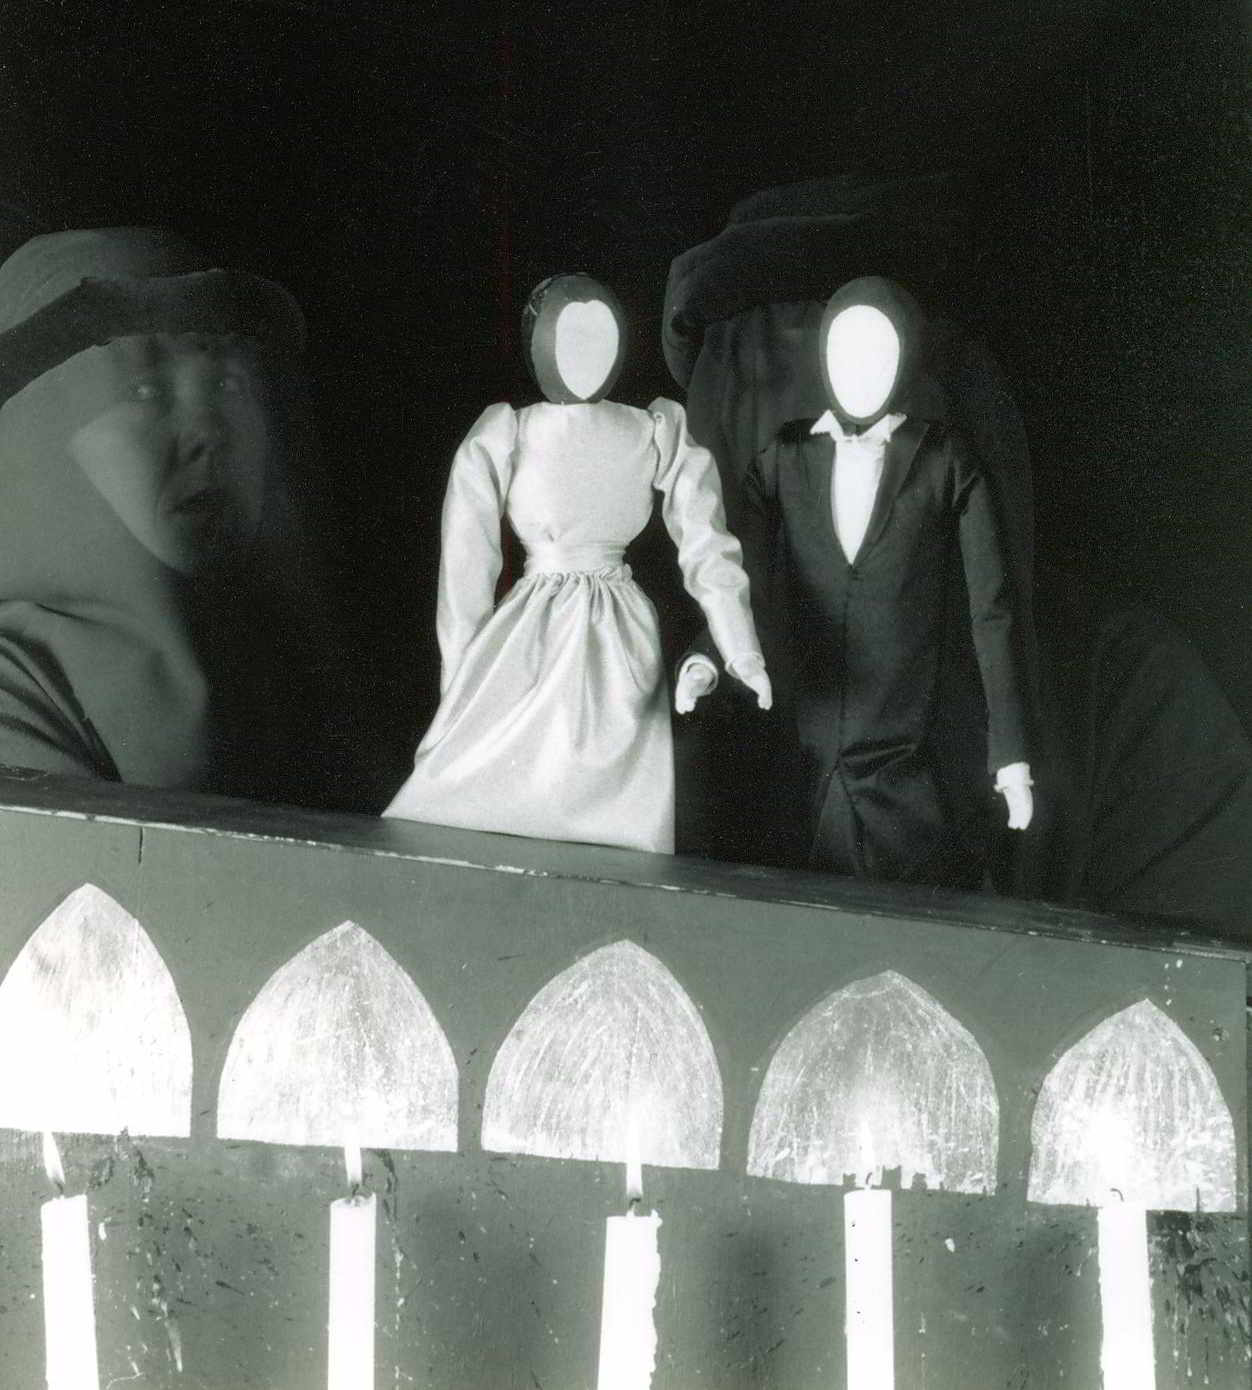 blank-faced man and woman puppets with hooded puppeteer